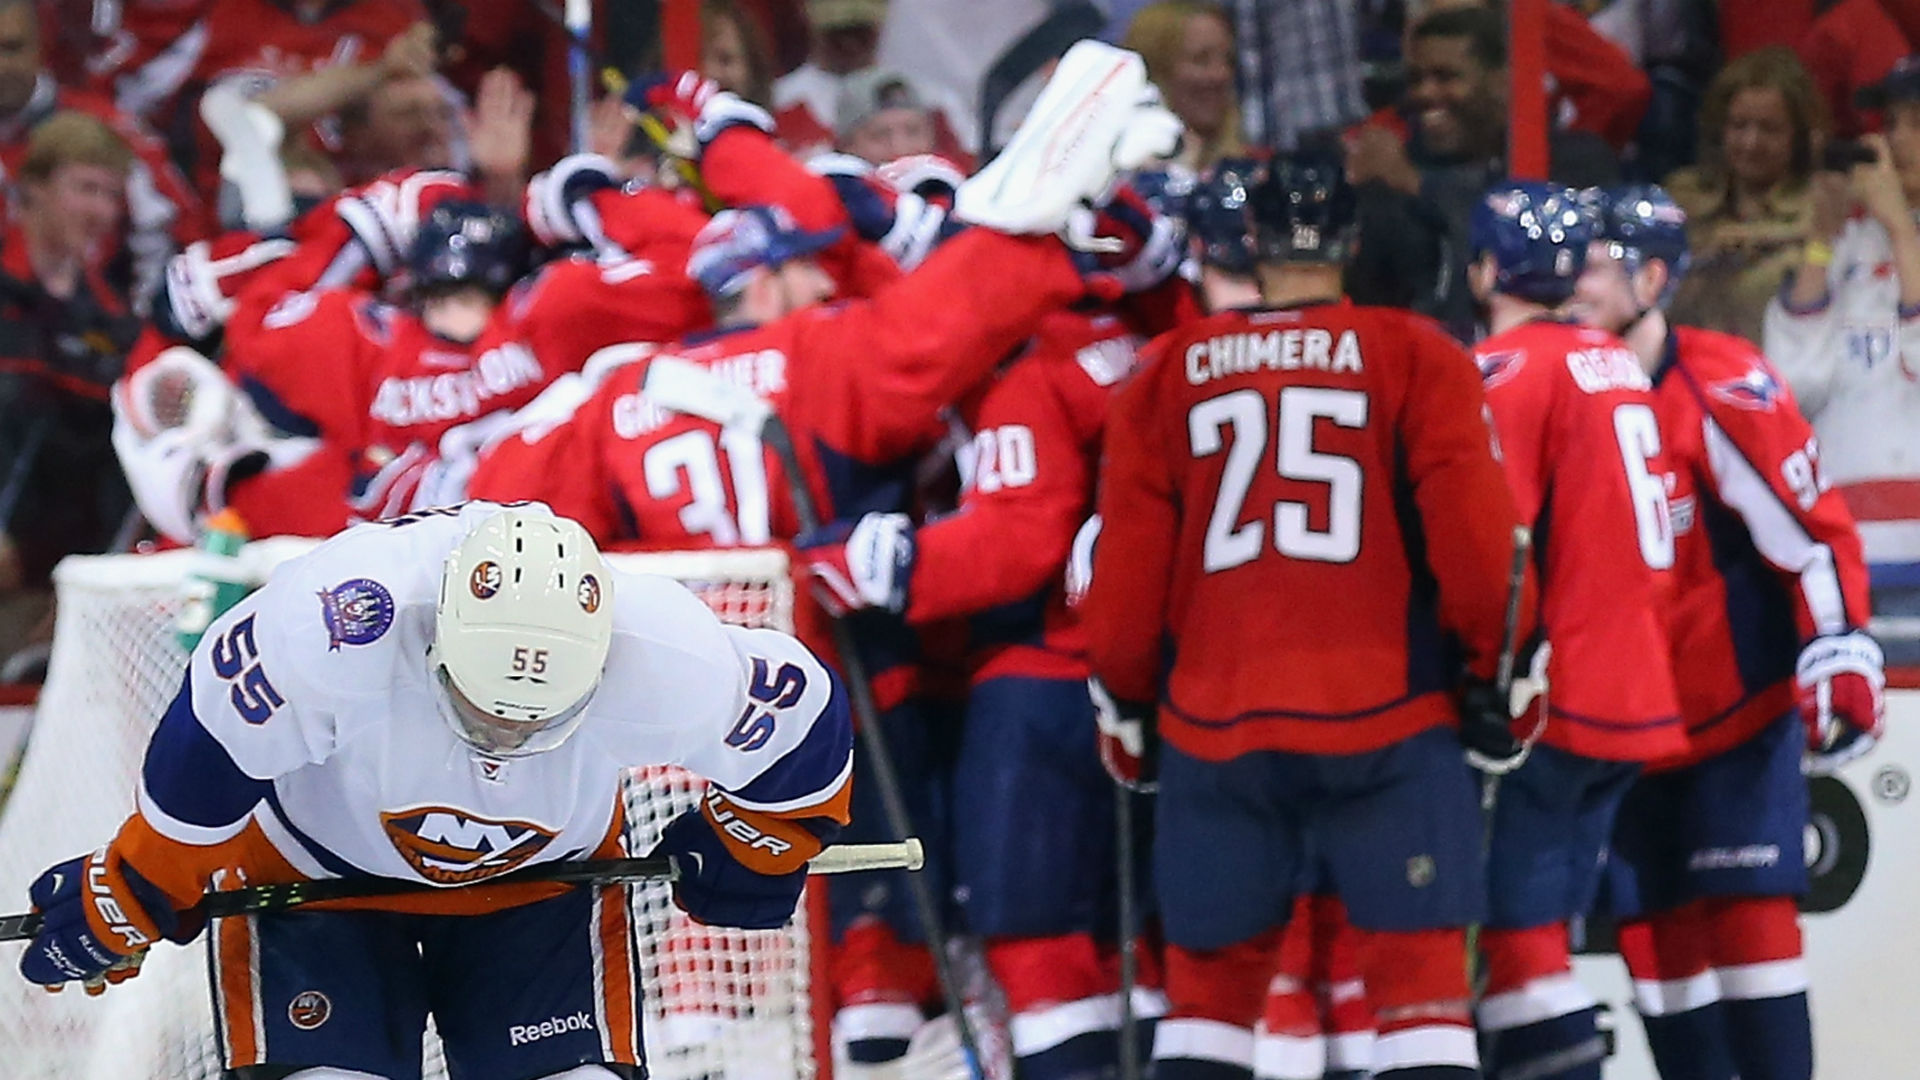 Stanley Cup playoffs roundup: Capitals edge Islanders in Game 7 as Lightning force one more